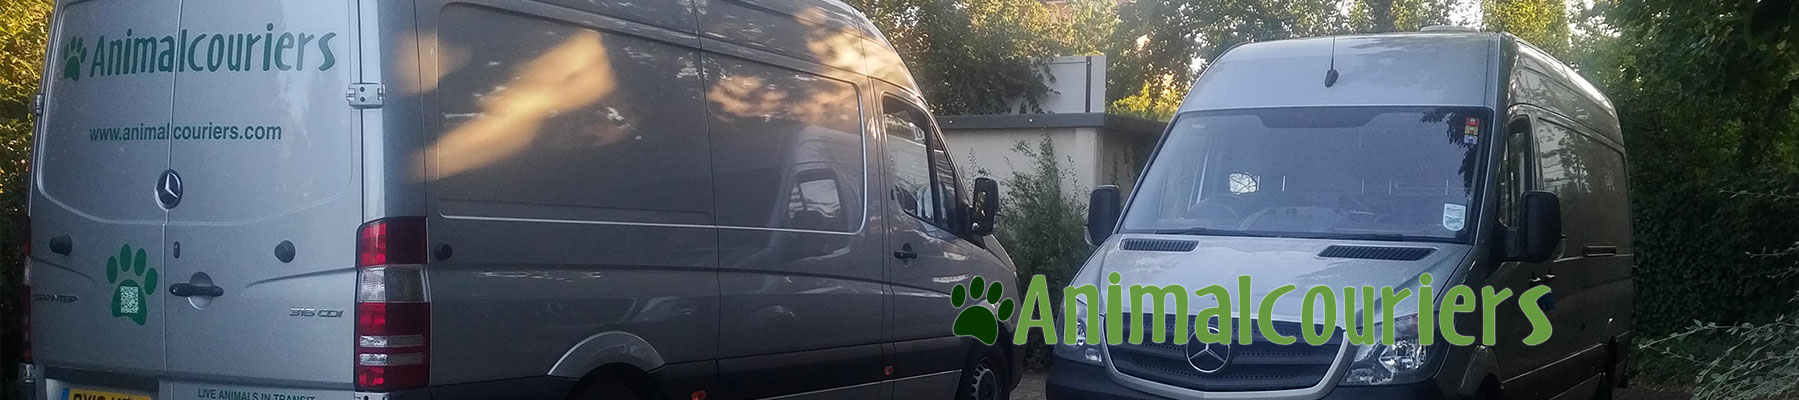 two Animalcouriers vans